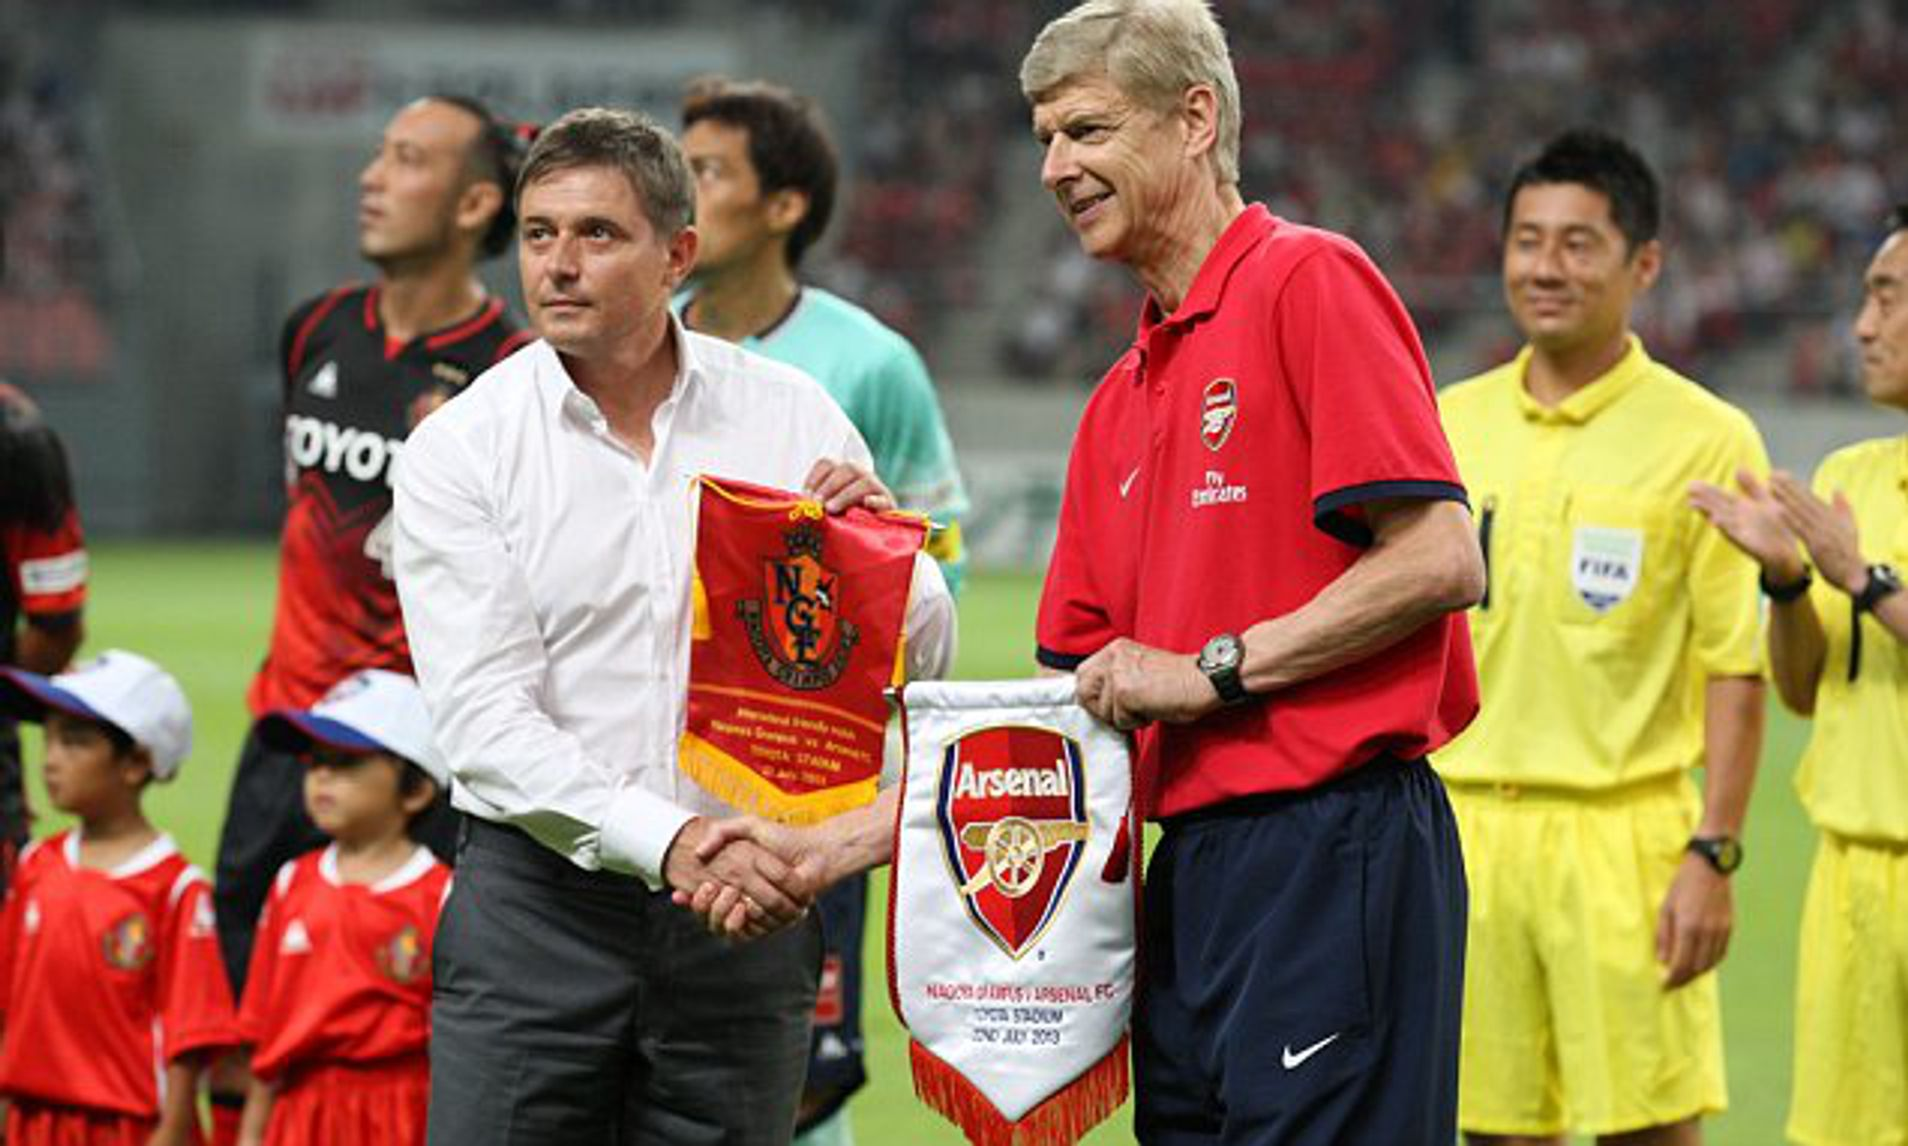 wenger wanted stojkovic to become his successor - Bóng Đá